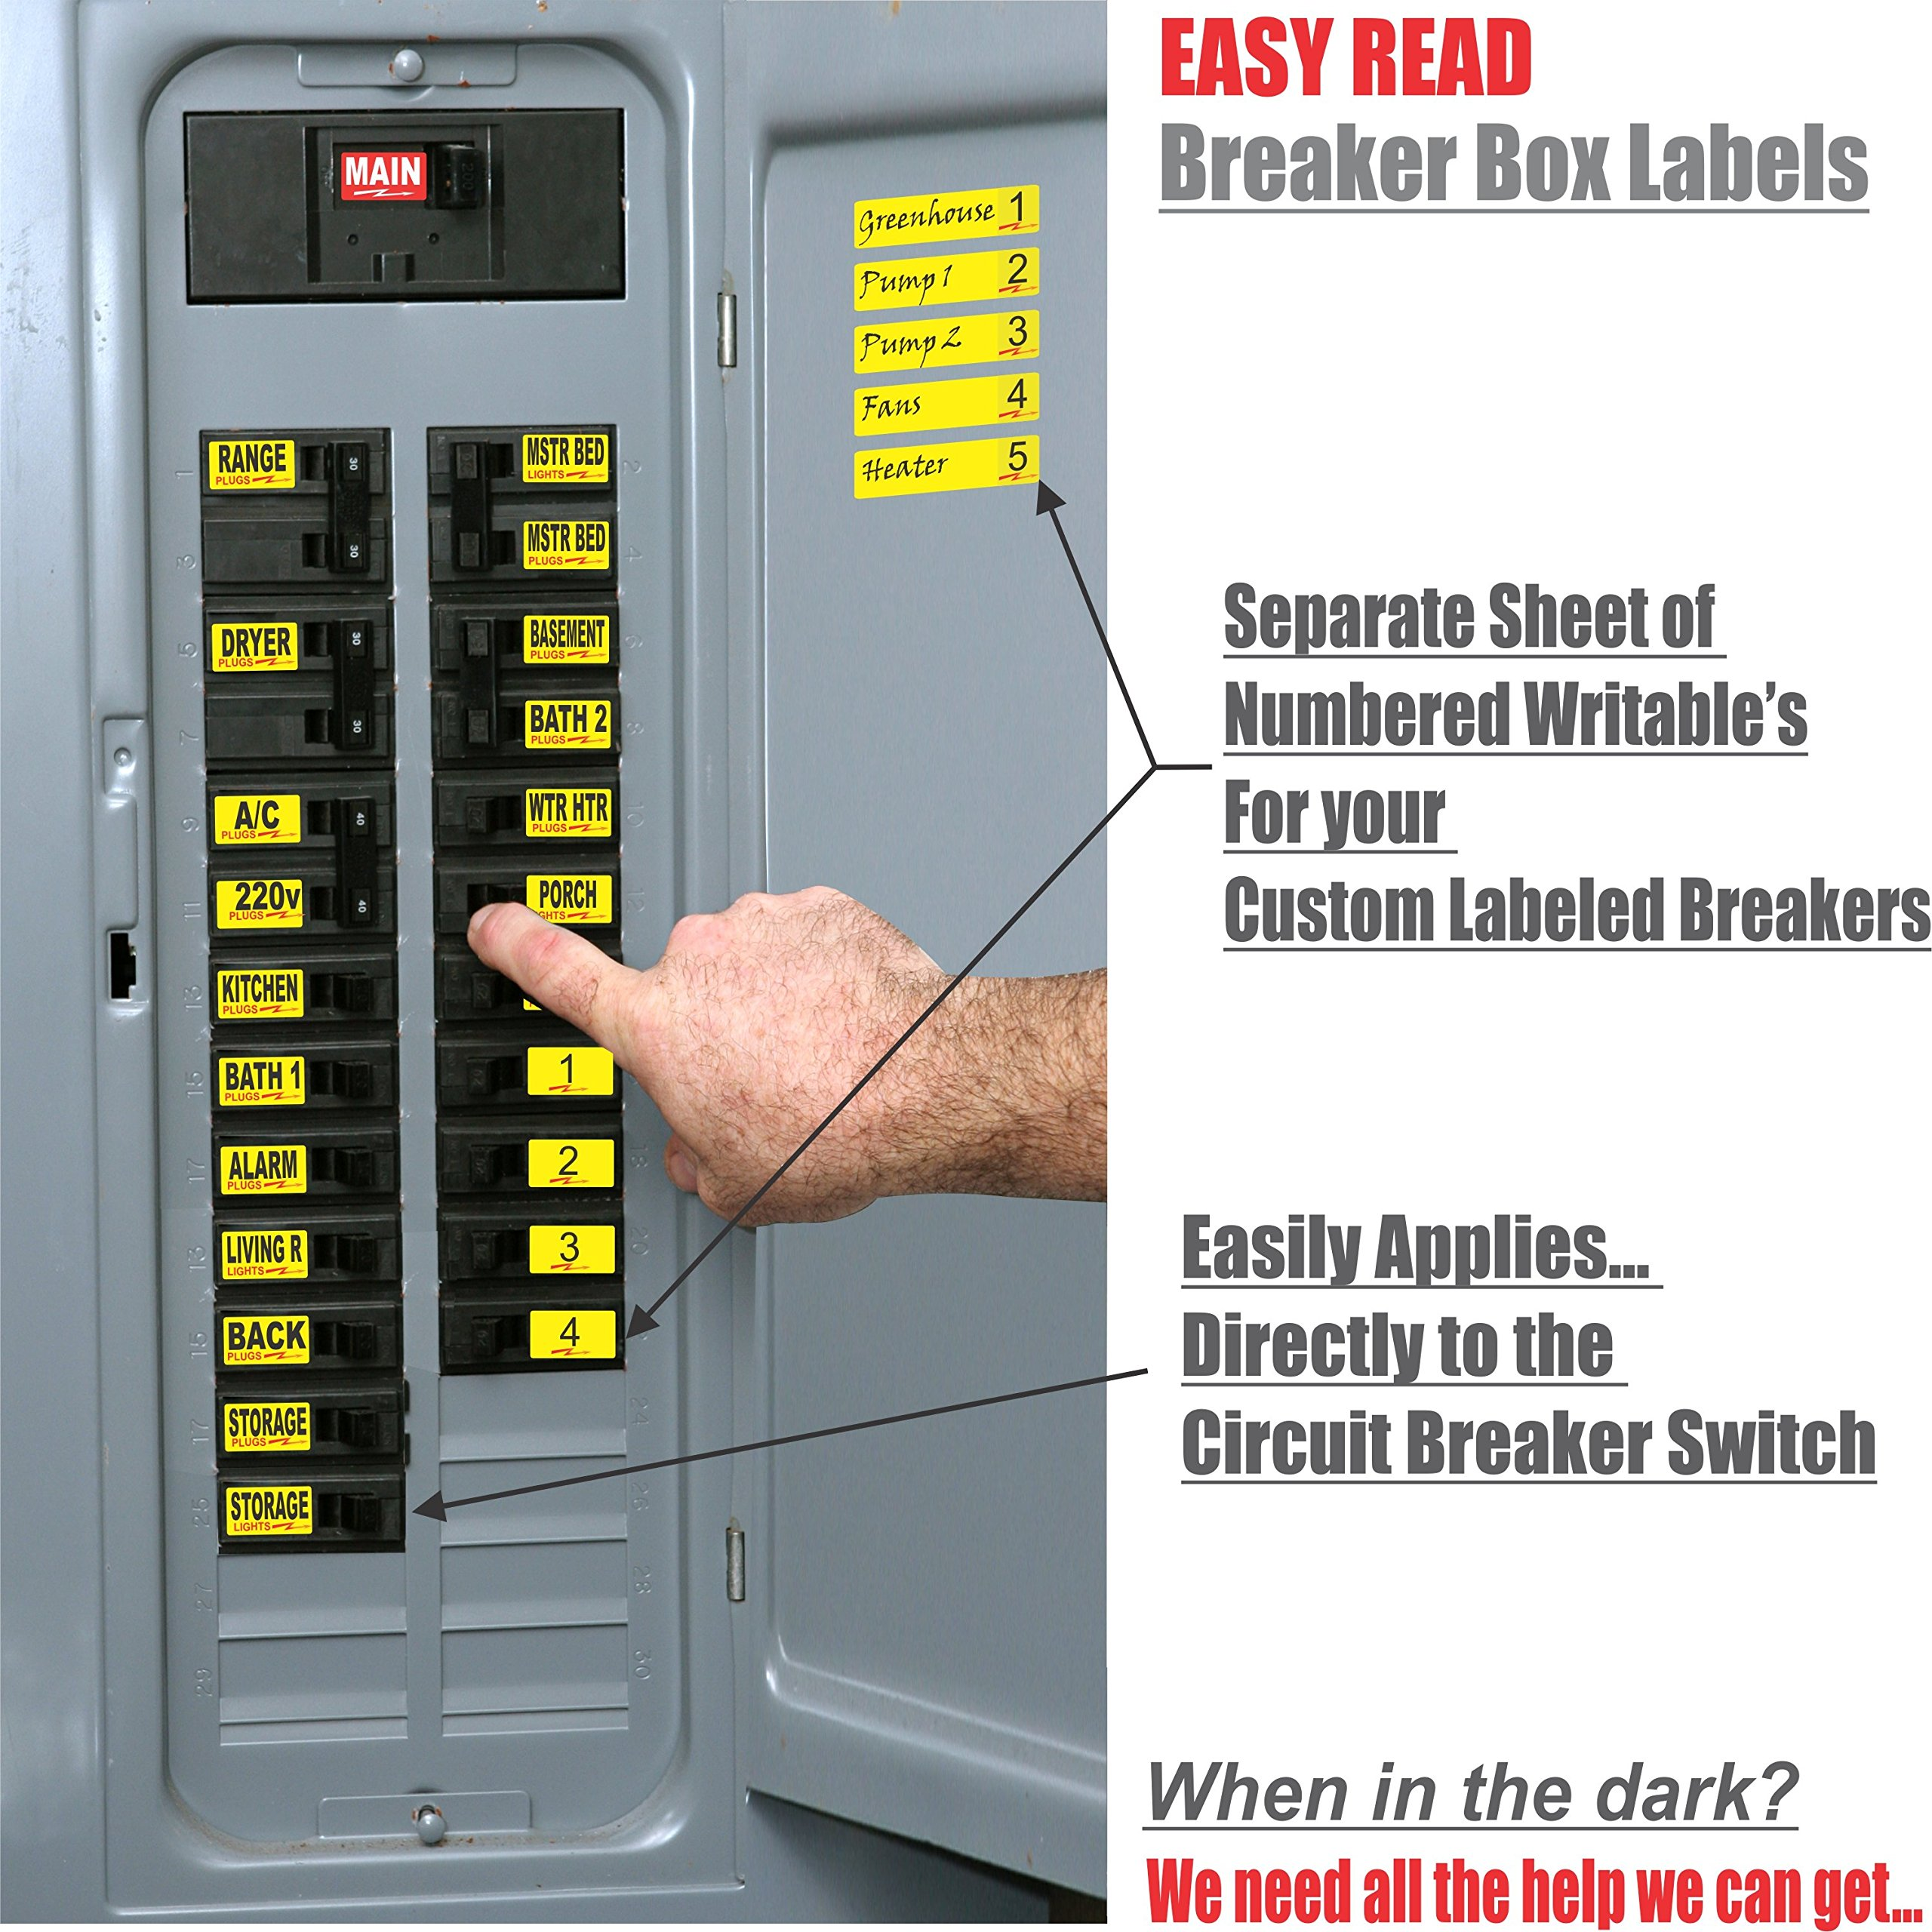 Circuit Breaker Decals 105 Tough Vinyl Labels For Panel 220v Fuse Box Boxes Great Home Or Office Apartment Complexes And Electricians Placed Directly